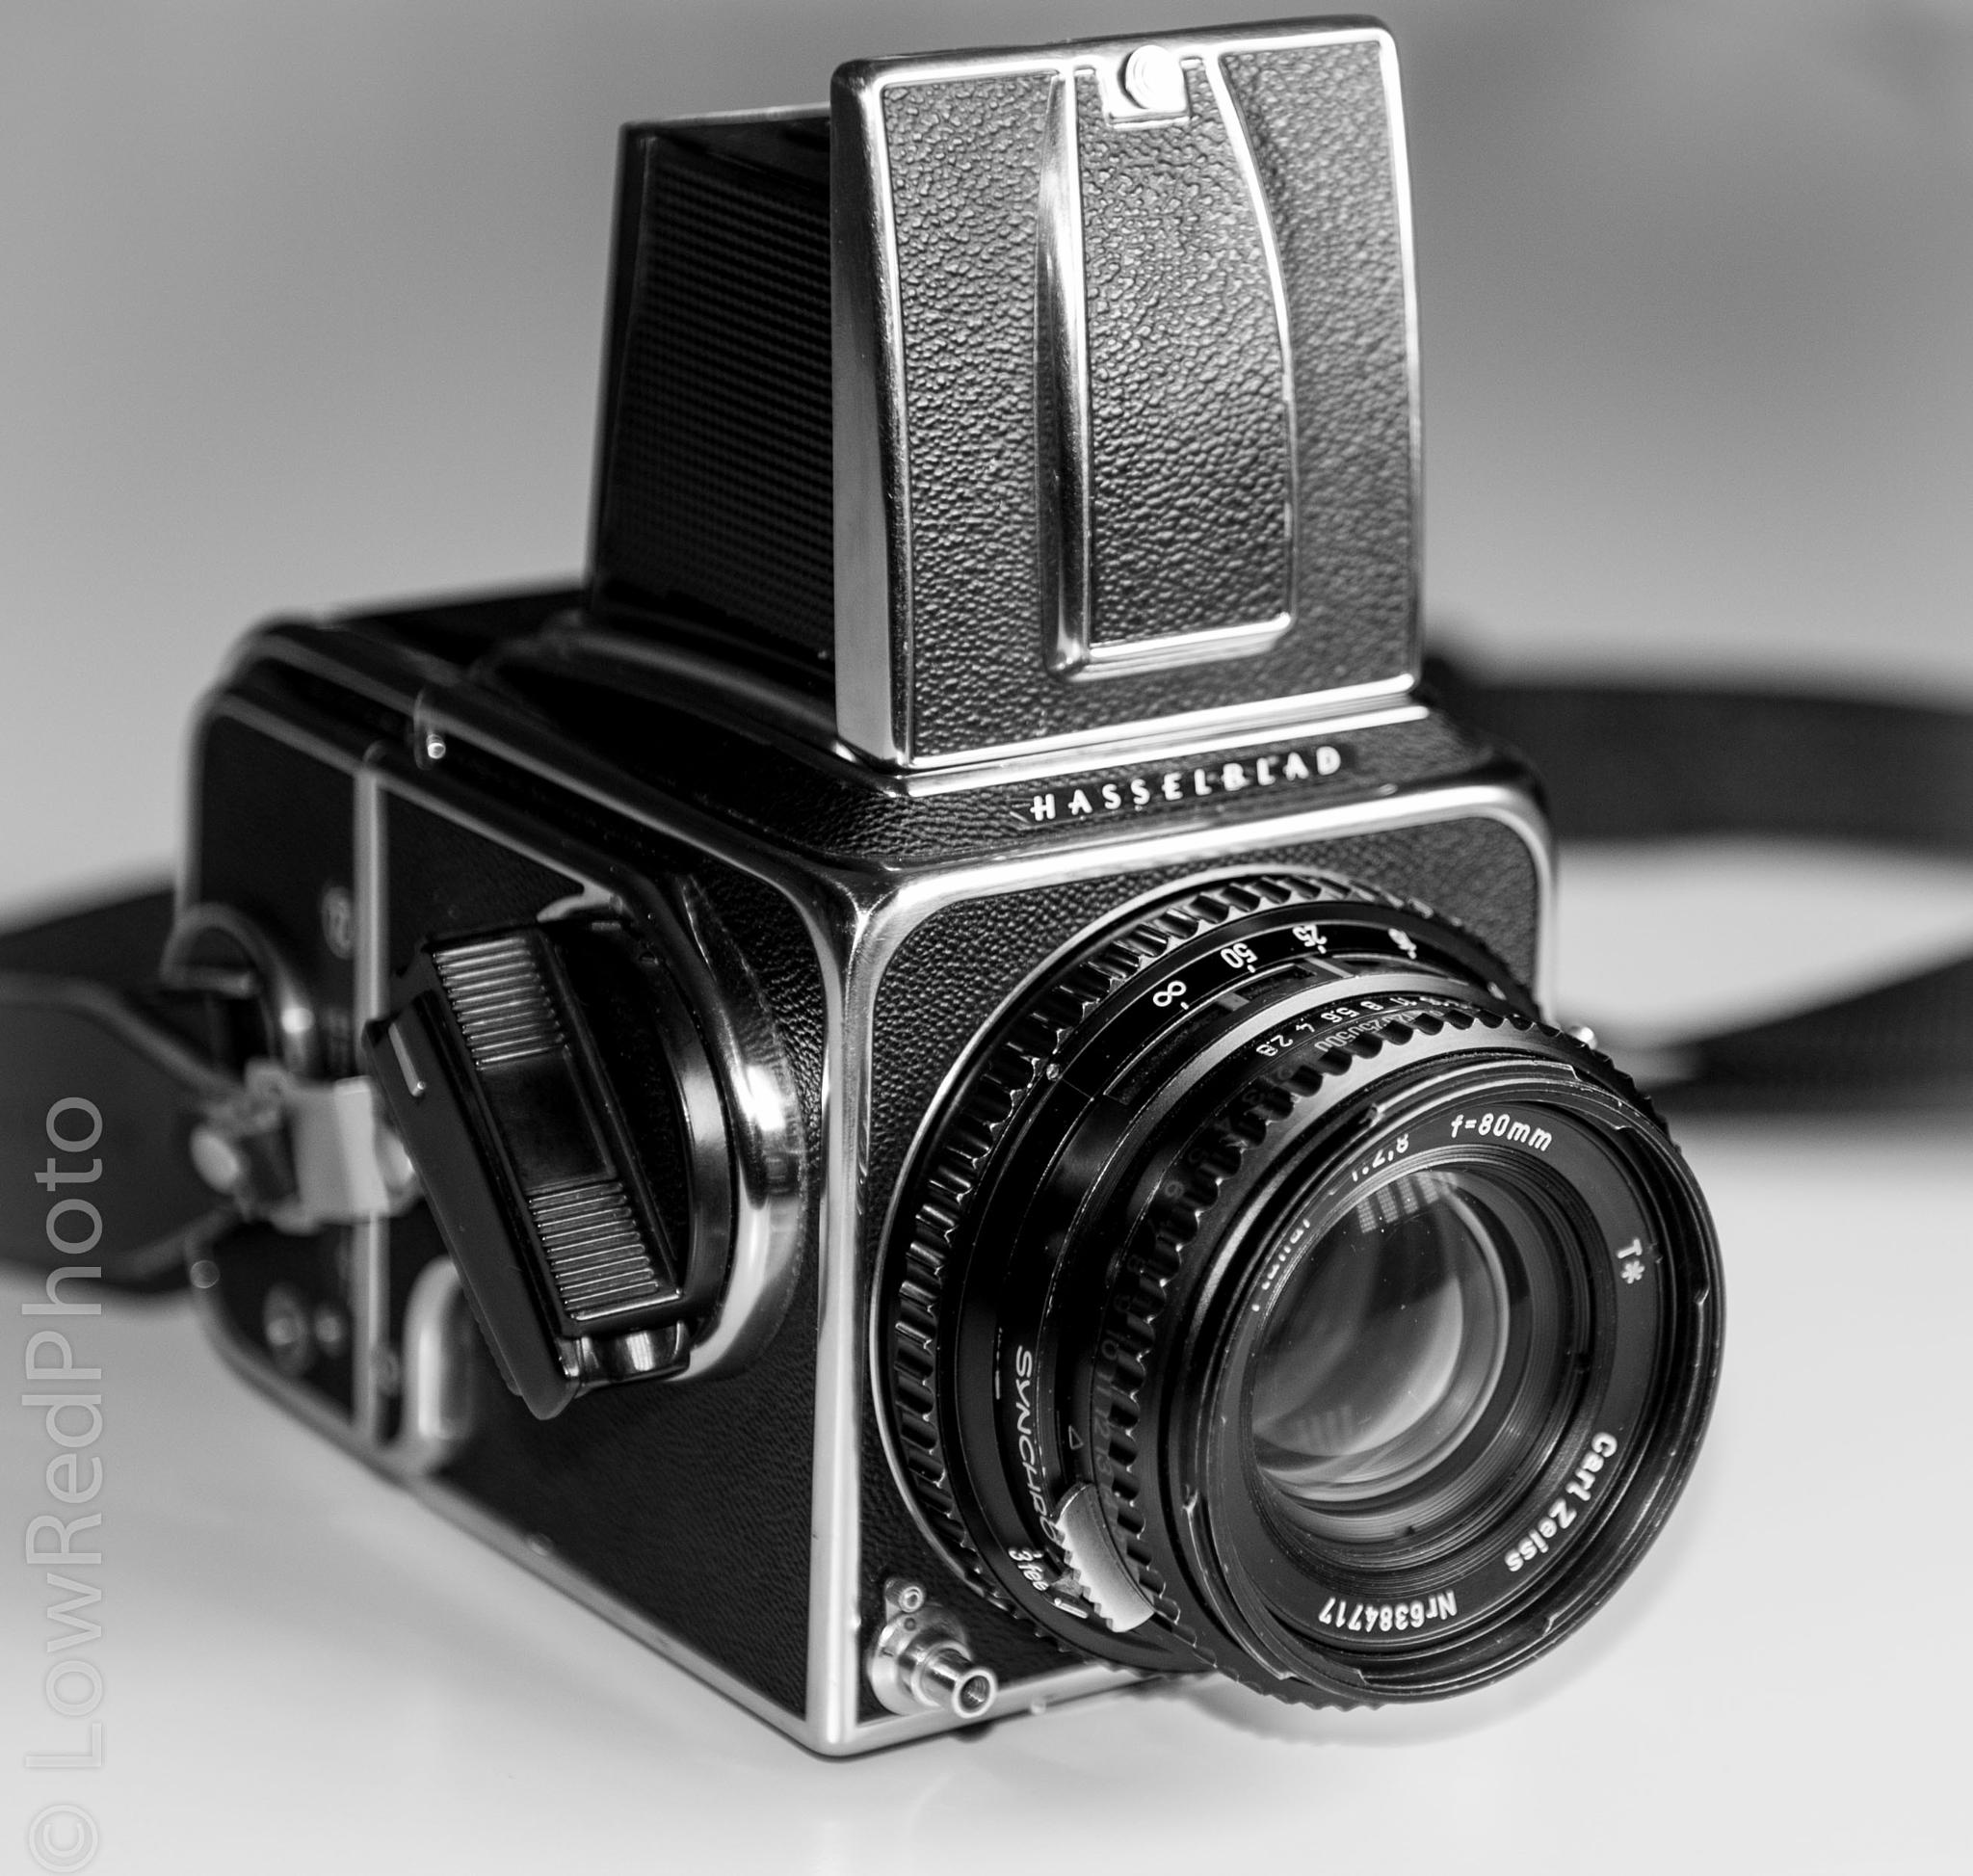 'Hasselblad' by LowRedPhoto